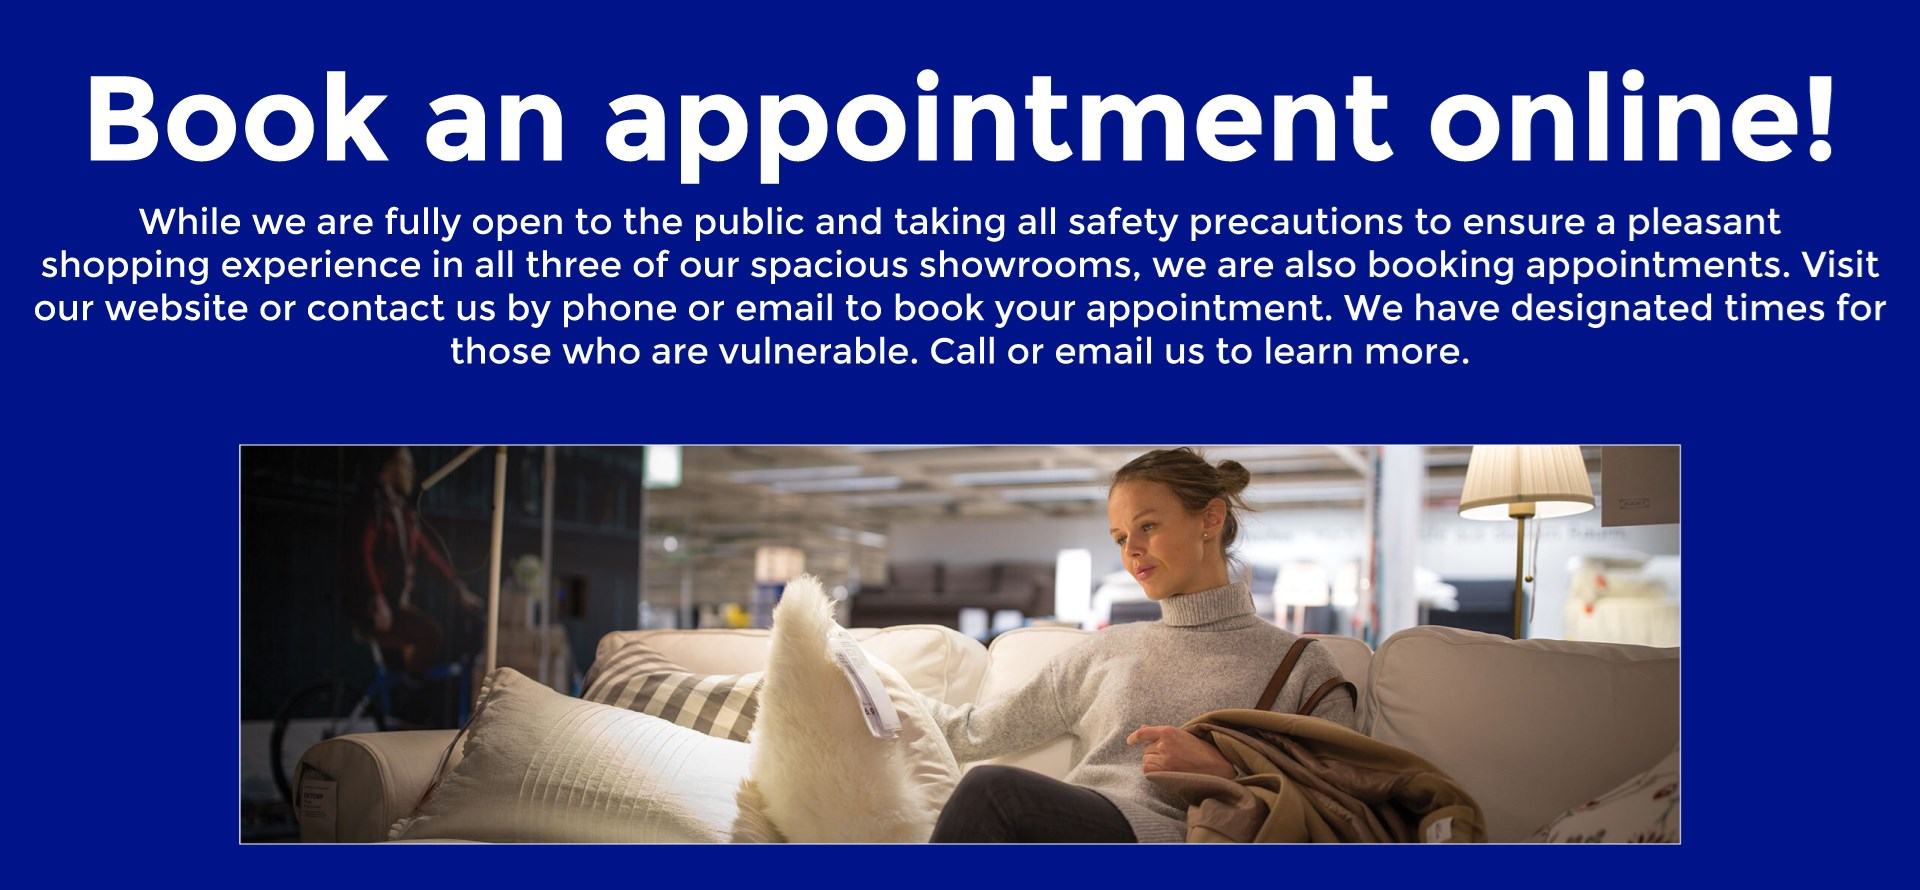 Book an Appointment Online!